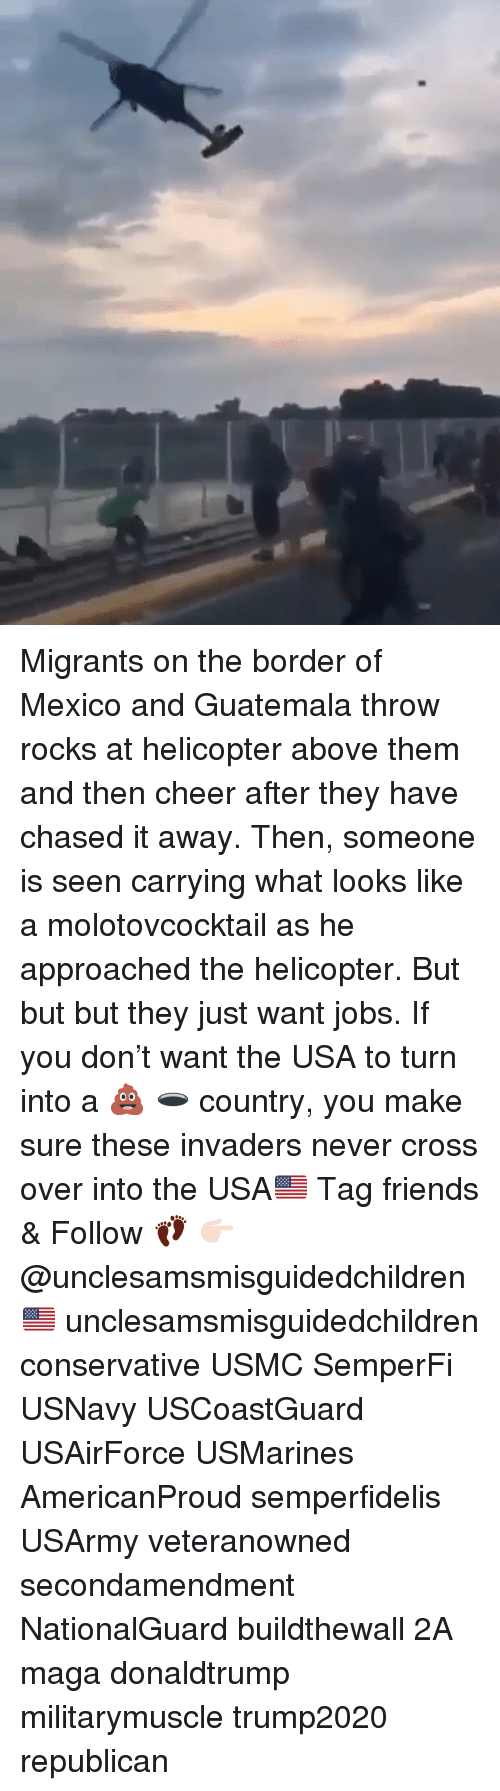 Friends, Memes, and Cross: Migrants on the border of Mexico and Guatemala throw rocks at helicopter above them and then cheer after they have chased it away. Then, someone is seen carrying what looks like a molotovcocktail as he approached the helicopter. But but but they just want jobs. If you don't want the USA to turn into a 💩 🕳 country, you make sure these invaders never cross over into the USA🇺🇸 Tag friends & Follow 👣 👉🏻 @unclesamsmisguidedchildren 🇺🇸 unclesamsmisguidedchildren conservative USMC SemperFi USNavy USCoastGuard USAirForce USMarines AmericanProud semperfidelis USArmy veteranowned secondamendment NationalGuard buildthewall 2A maga donaldtrump militarymuscle trump2020 republican